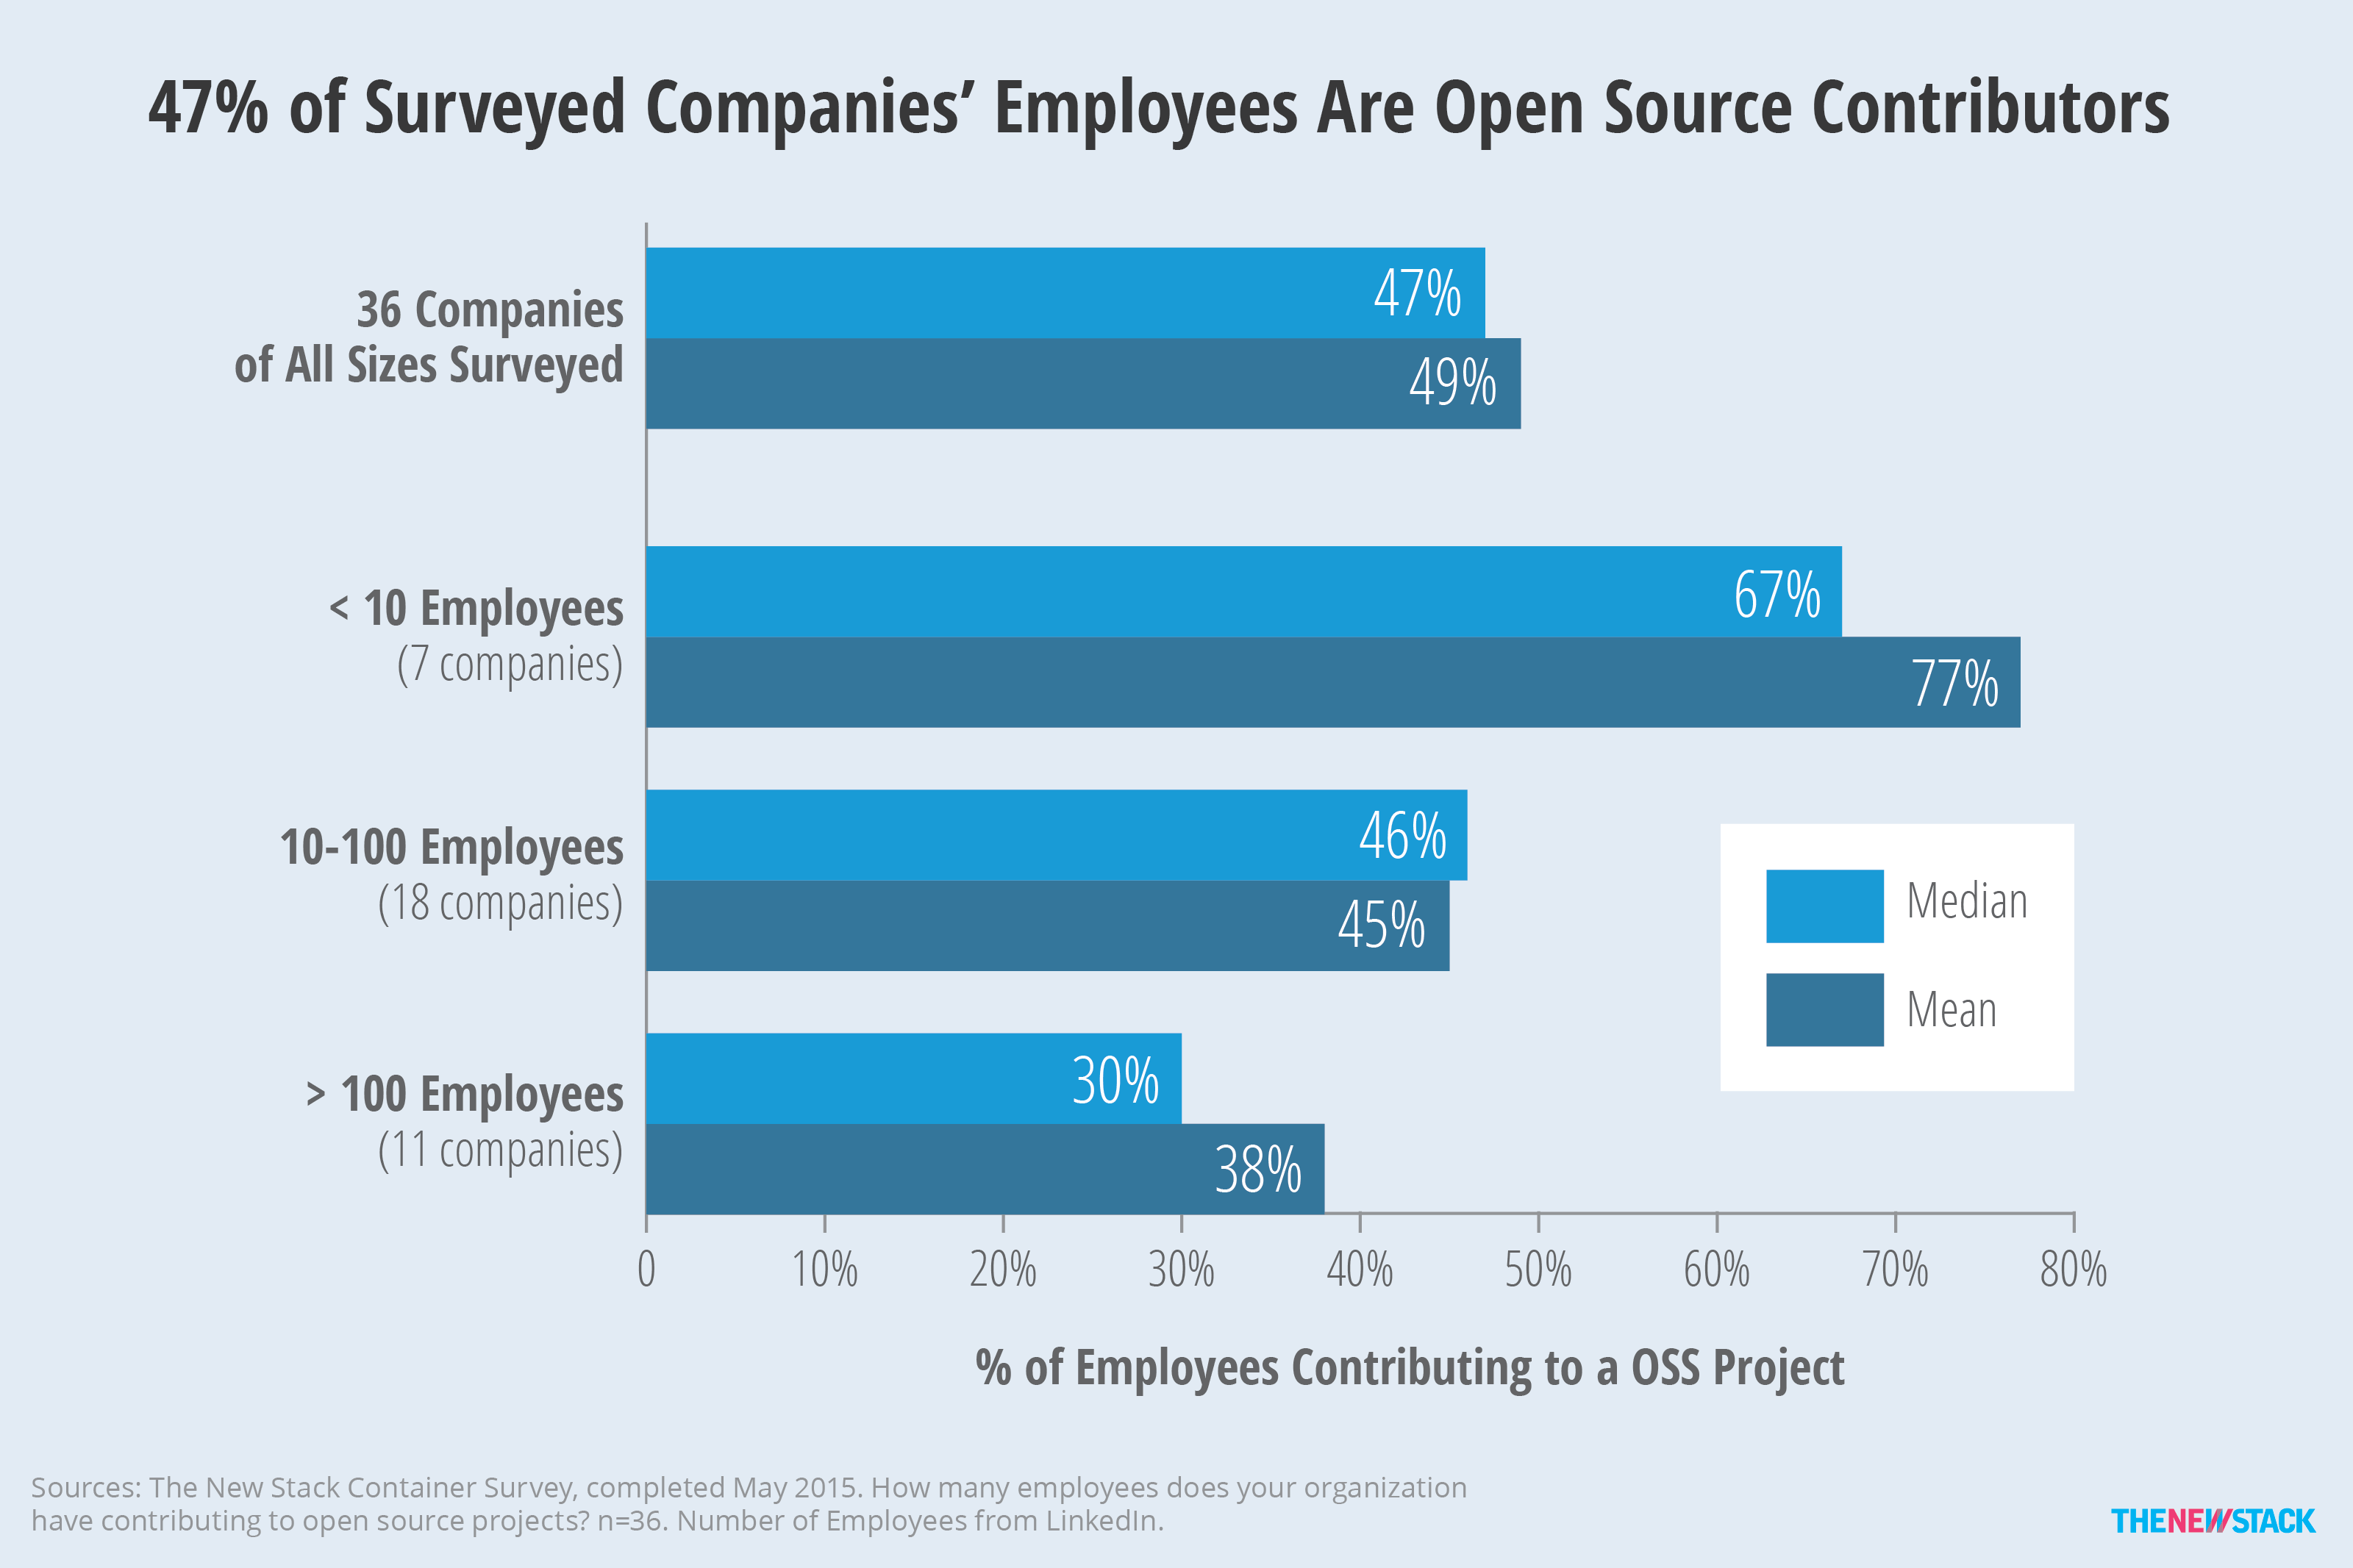 47% of Surveyed Companies' Employees Are Open Source Contributors